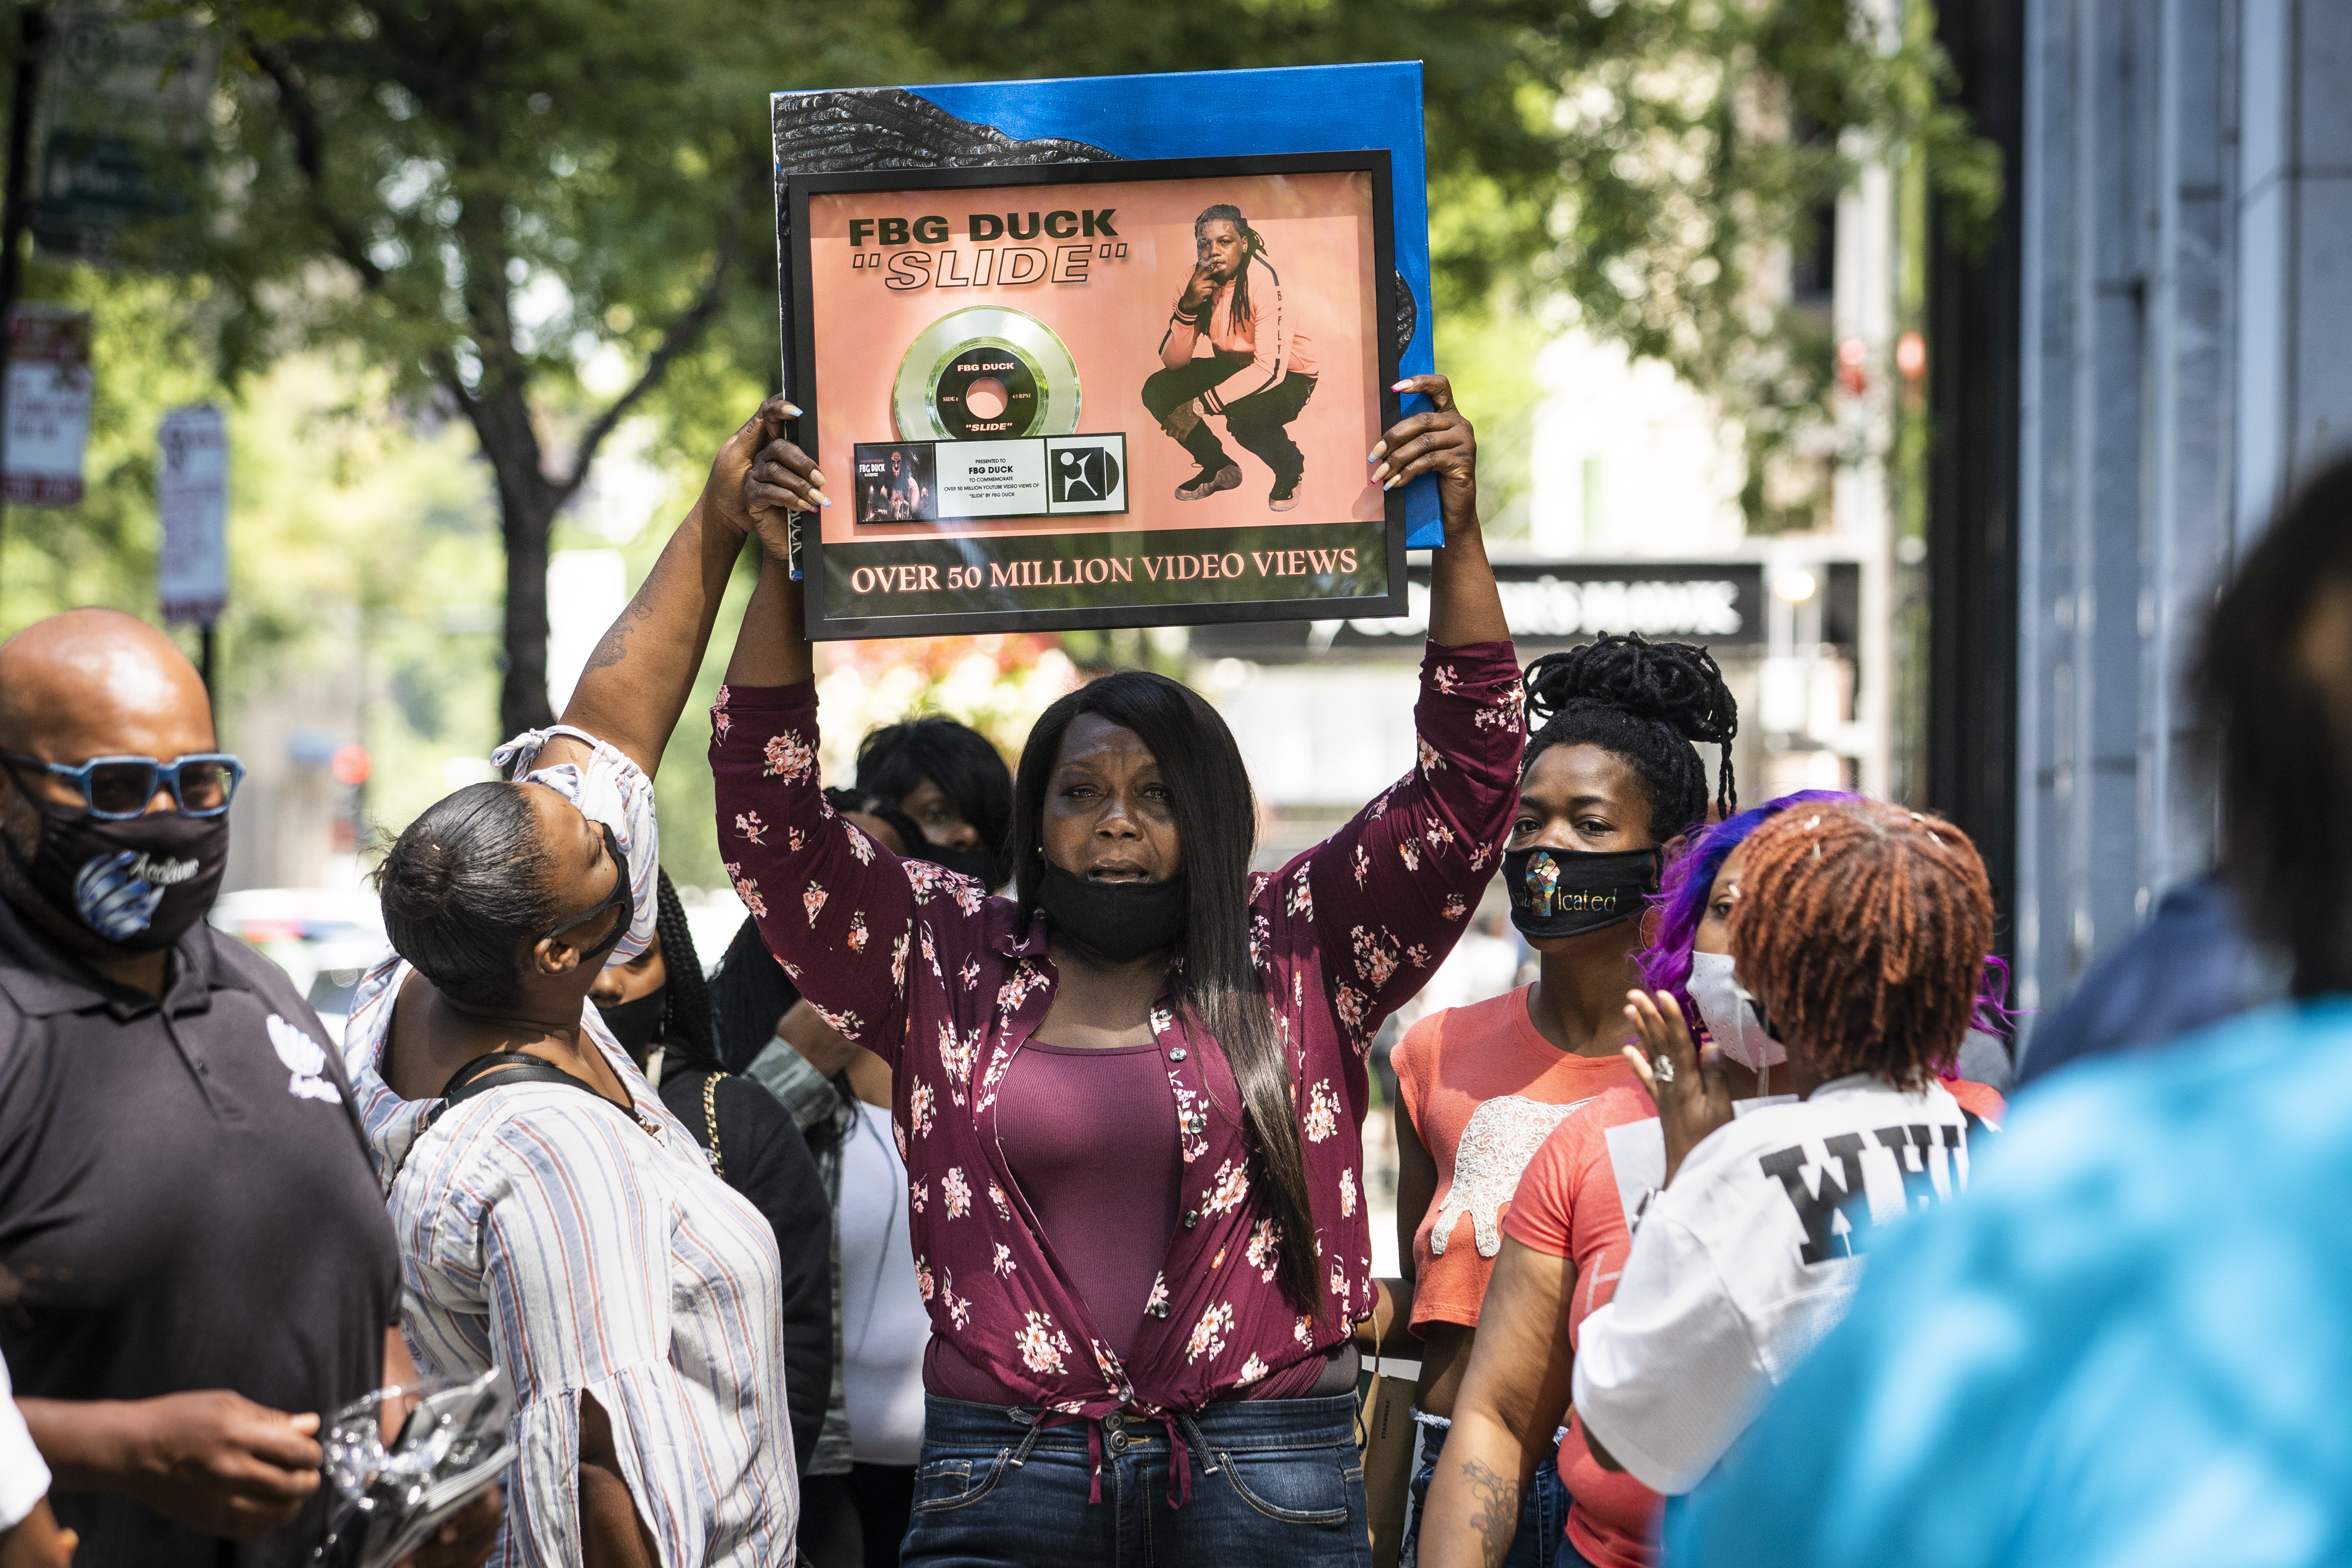 LaSheenaWeekly, mother of Carlton Weekly, who performed as FBG Duck, held a news conference with family and friends near the scene of her son's fatal shooting in the first block of East Oak Street in the Gold Coast, Friday, Aug. 7, 2020.